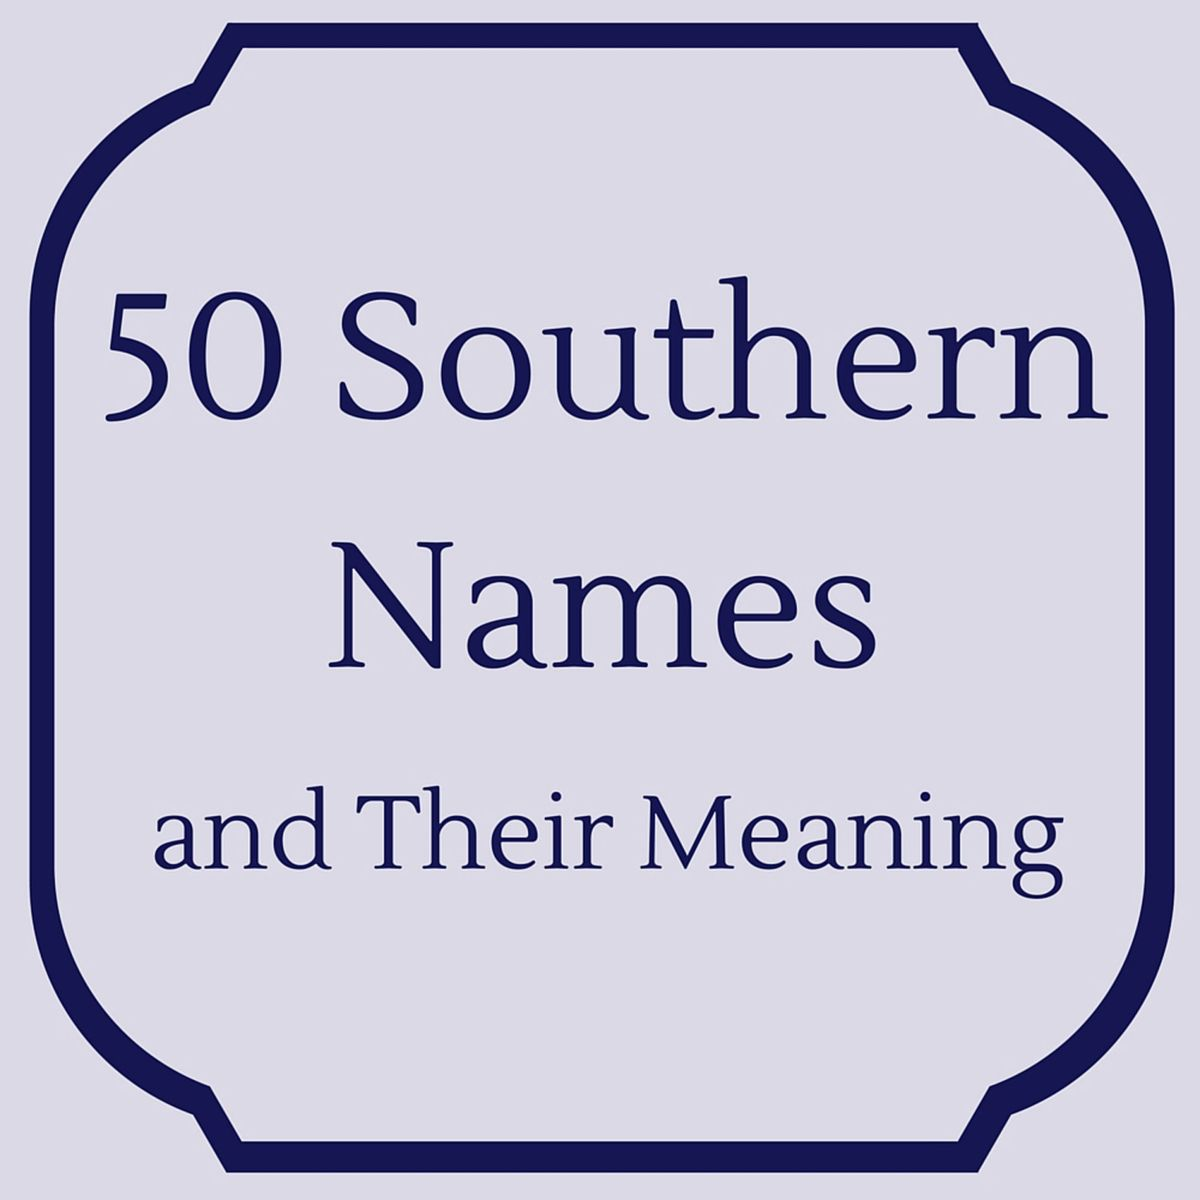 Southern Names & Their Meanings